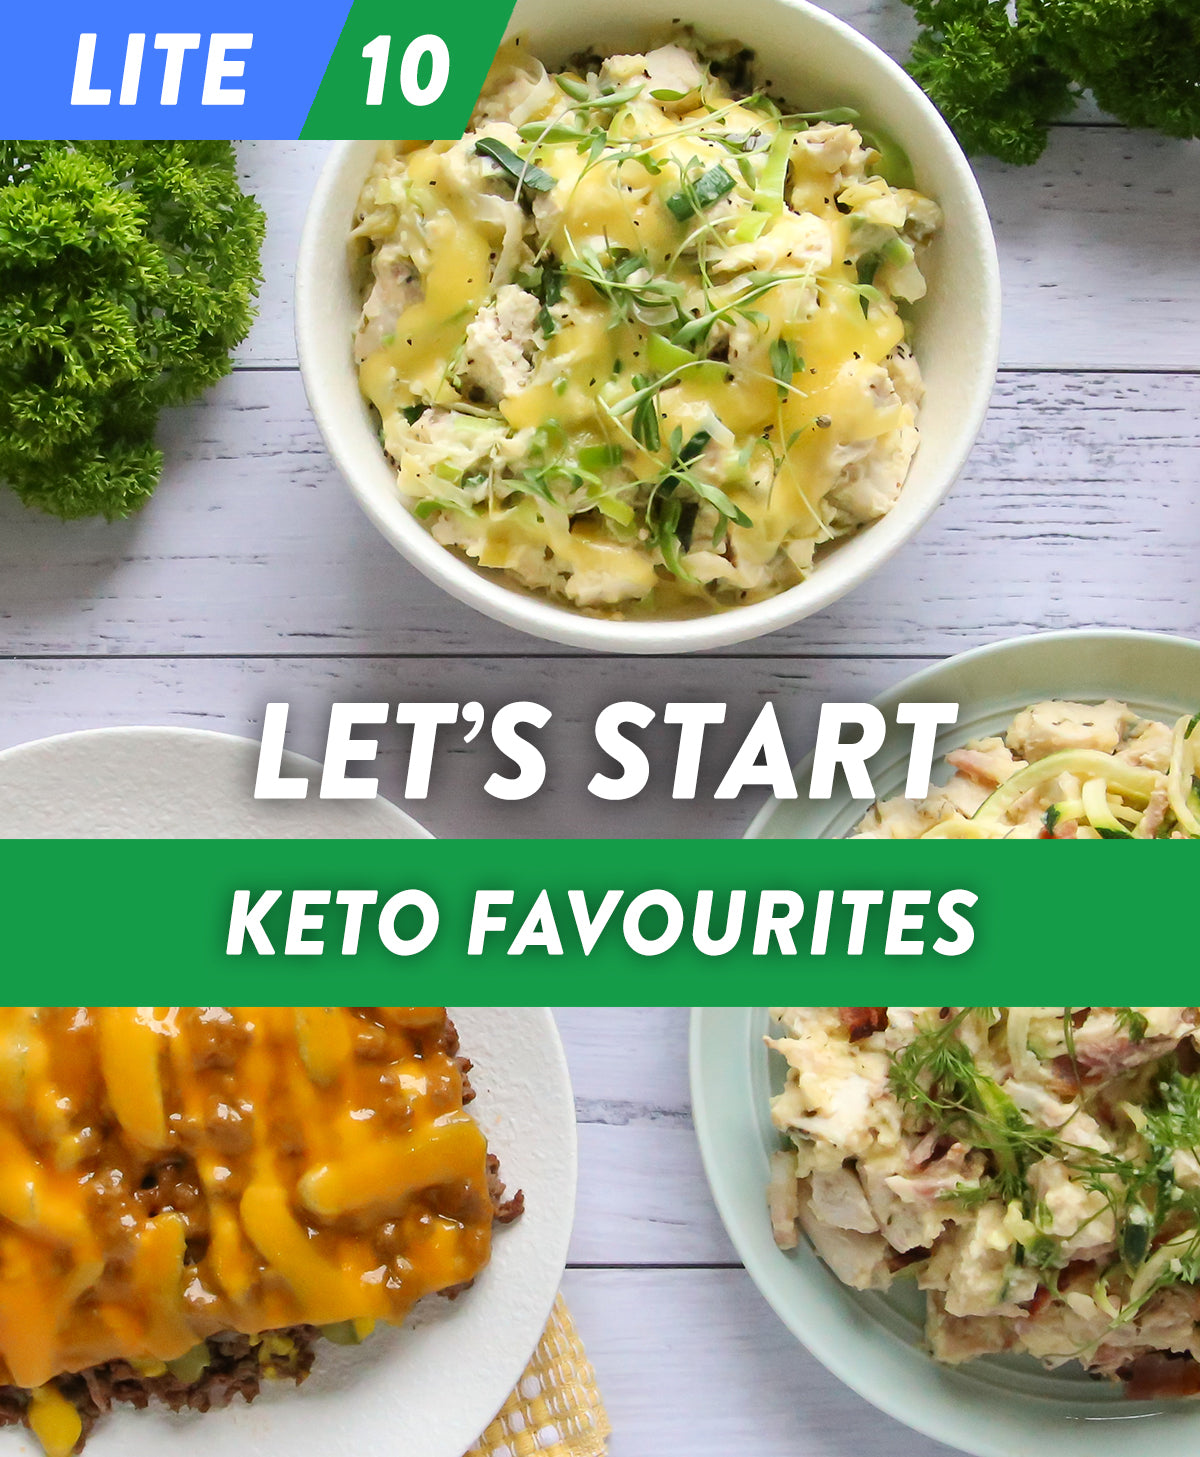 Let's Start - Keto Favourites LITE 10